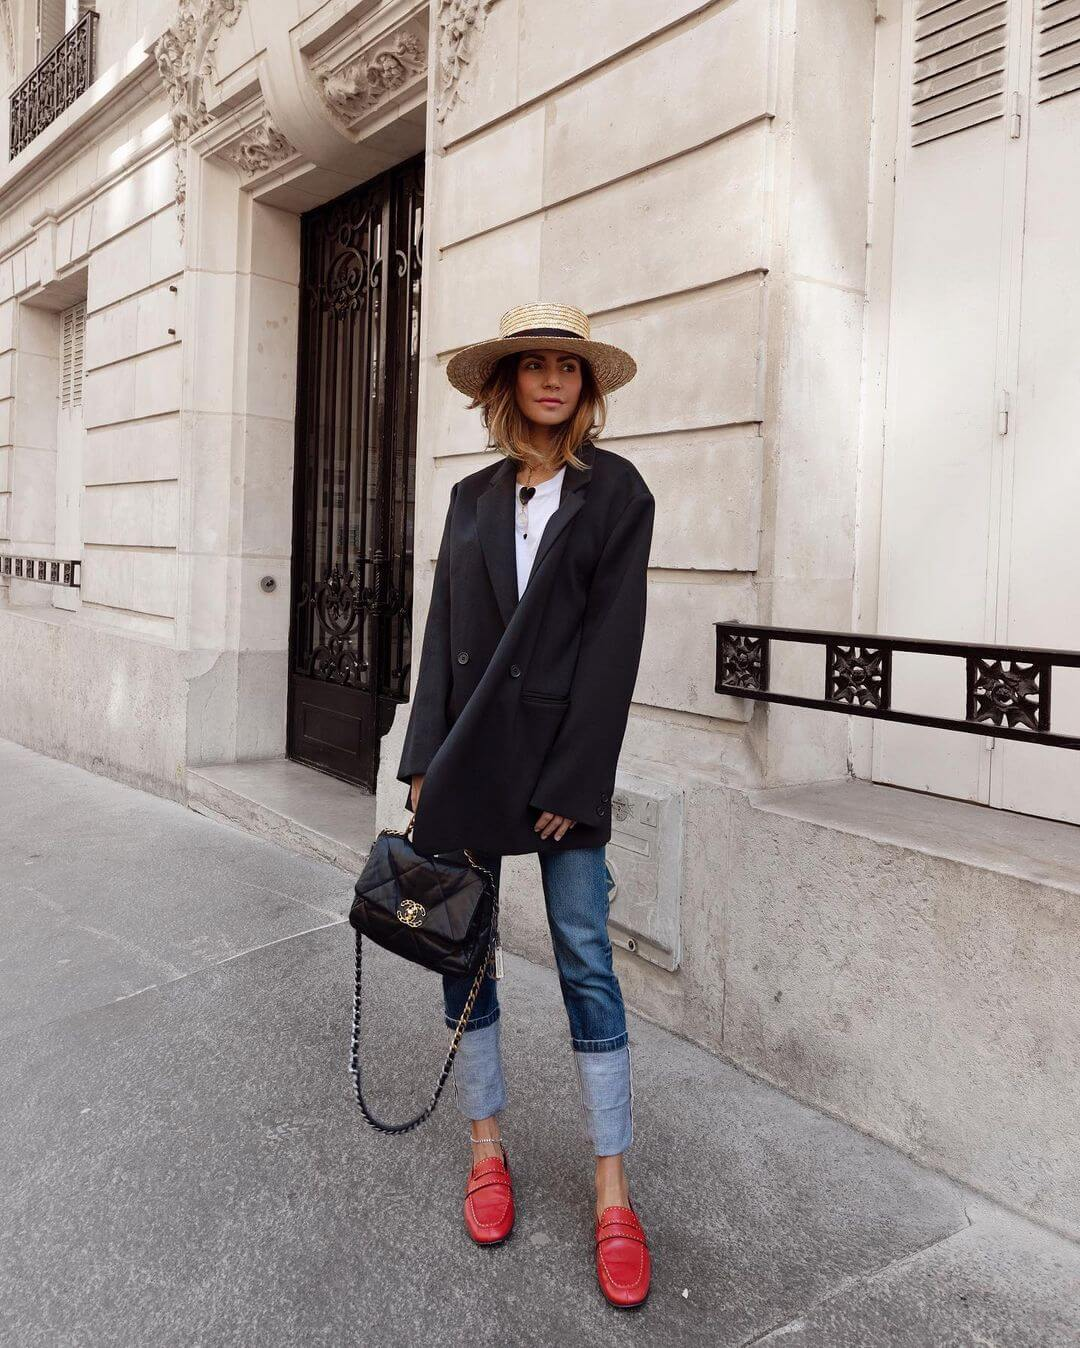 This Business Casual Outfit Is Perfect For Work & Beyond